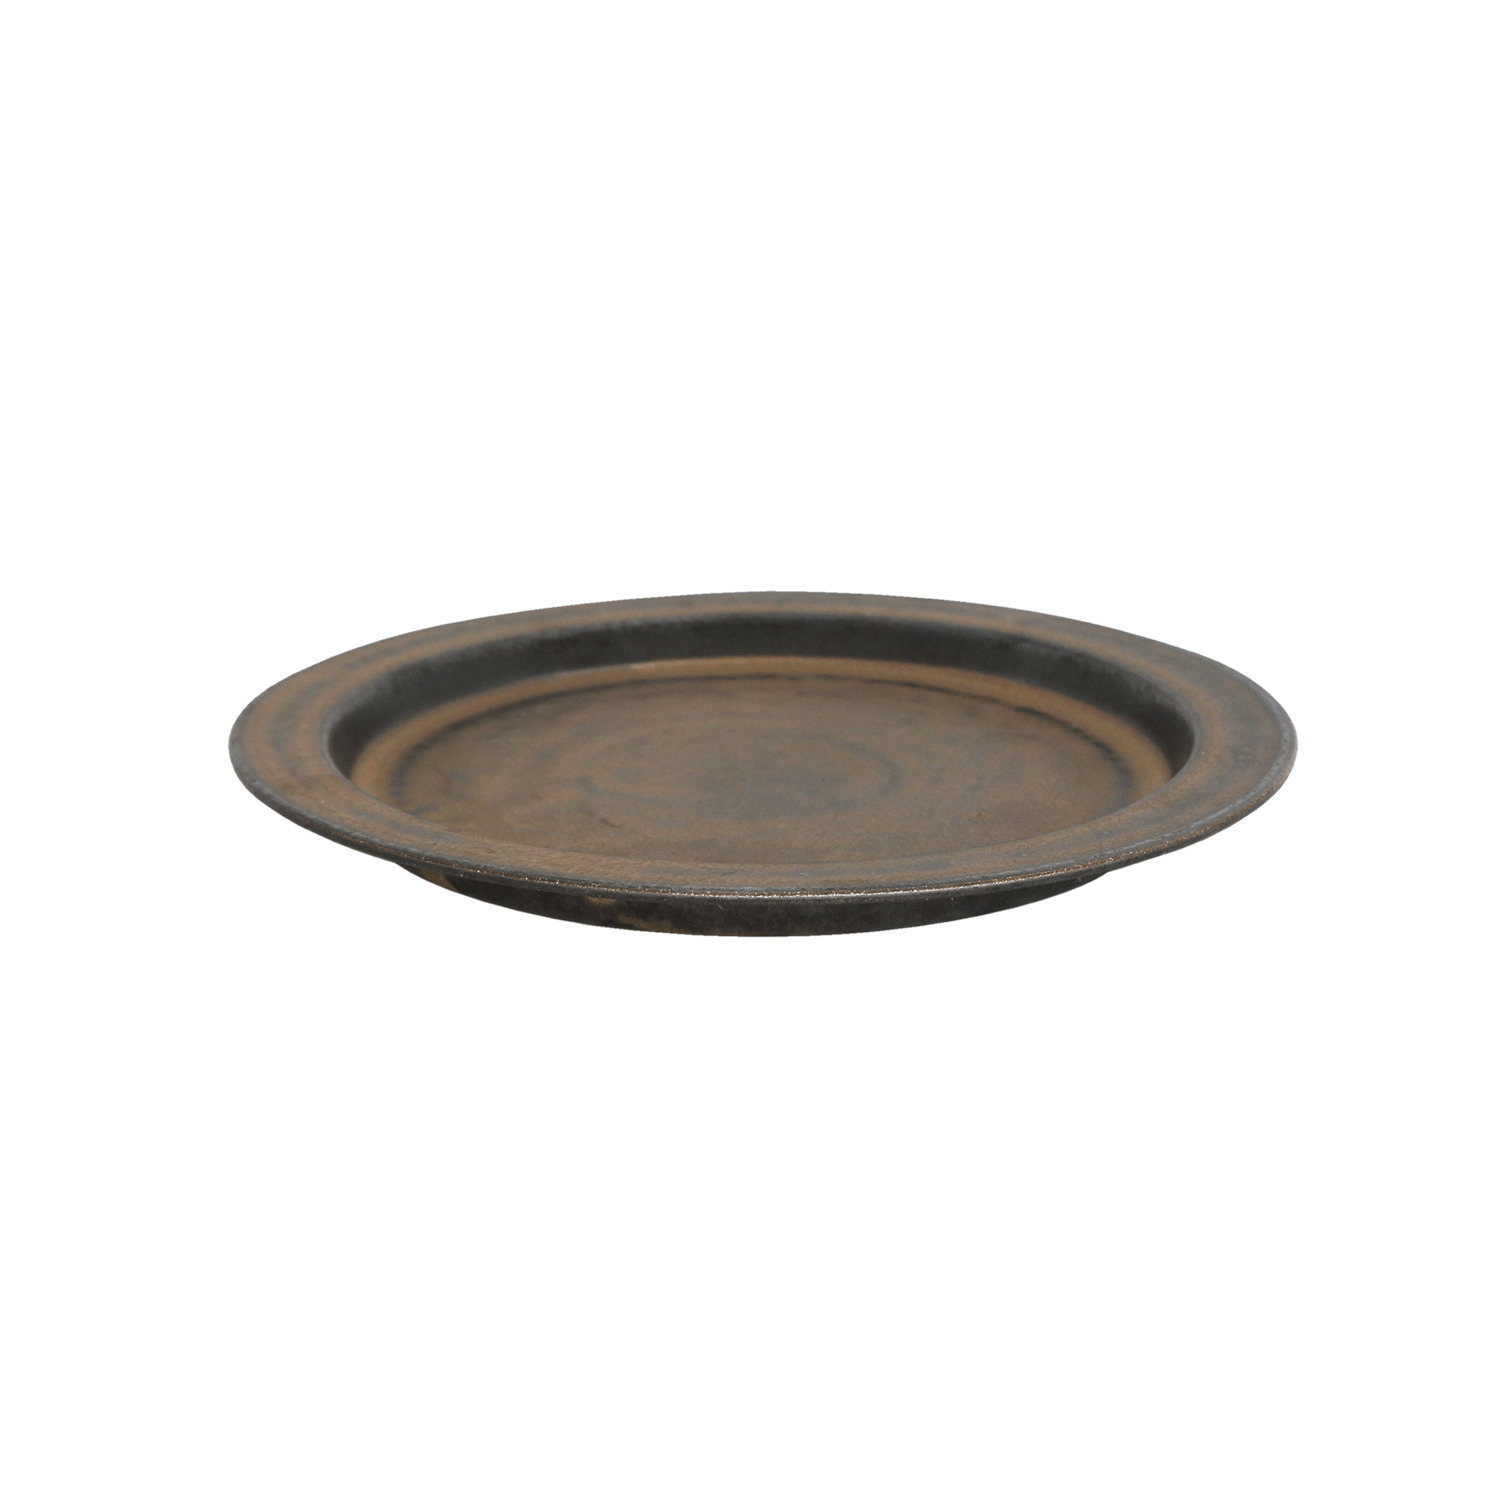 ANCIENT POTTERY Plate L/Brass